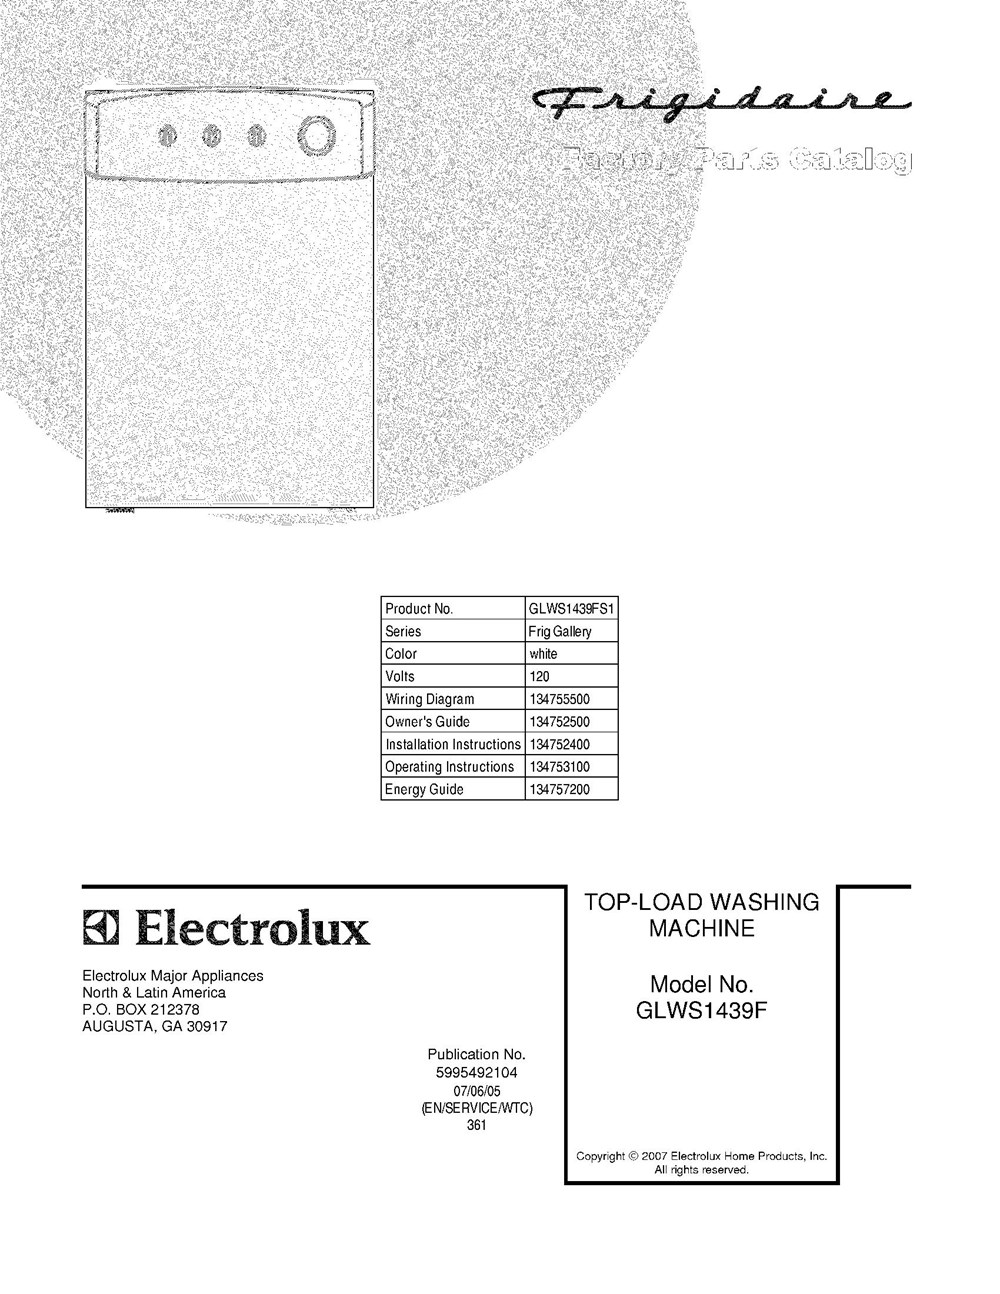 Whirlpool Dryer Wiring Diagram Location : Whirlpool estate dryer thermal fuse location samsung